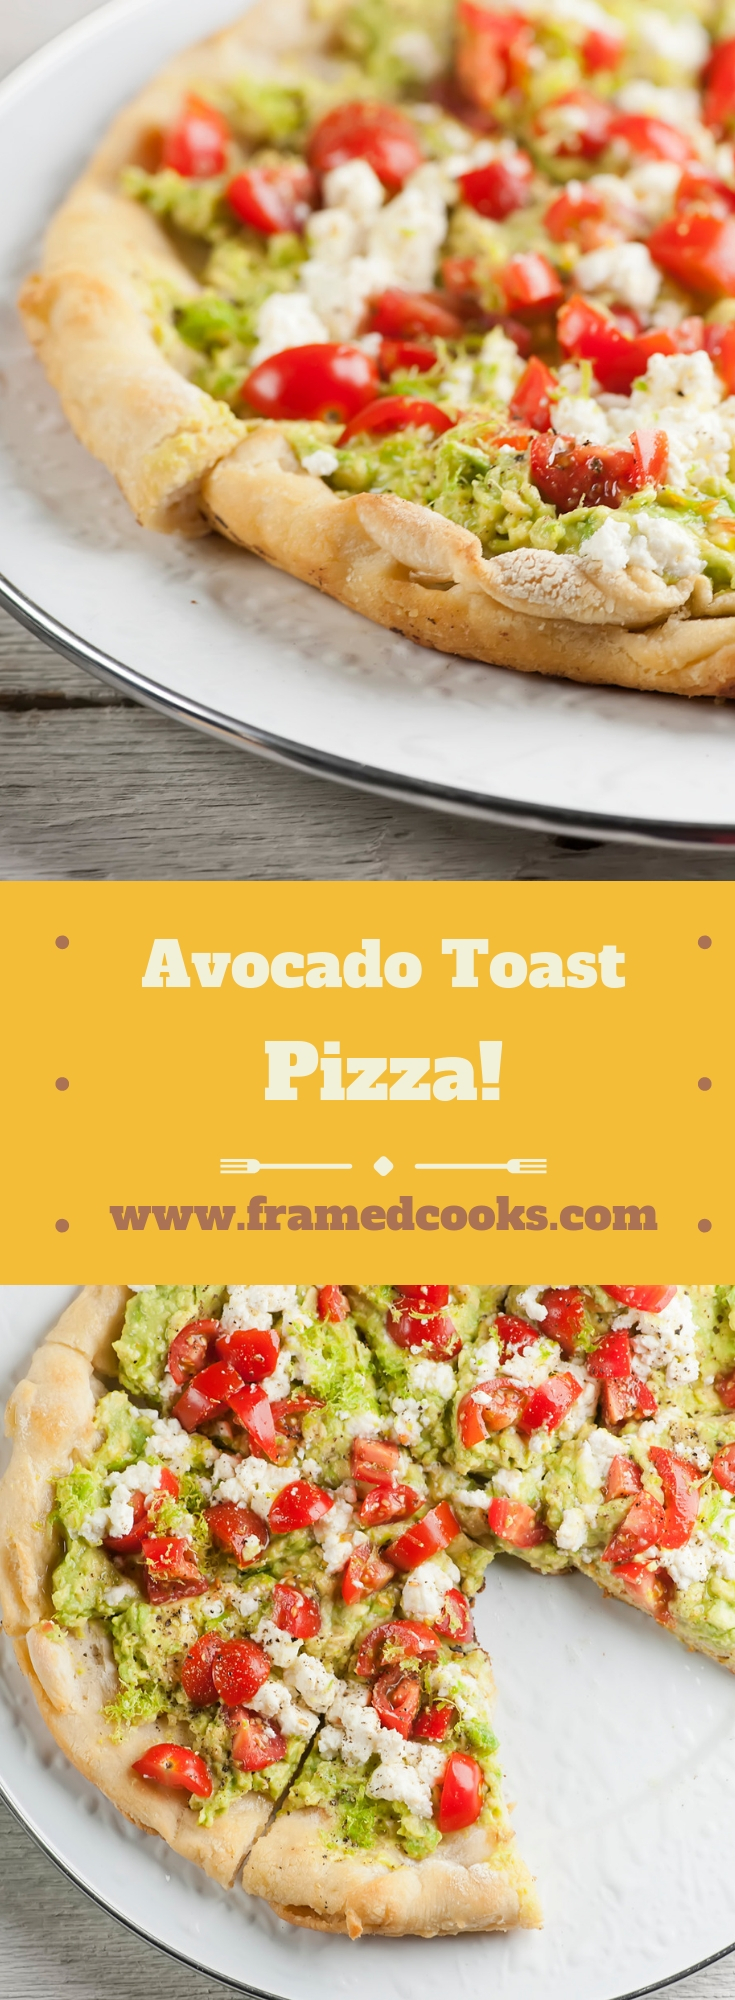 Love avocado toast?  Then you are going to adore this easy recipe for avocado toast pizza with chopped tomato, cheese and a hint of lemon flavor!